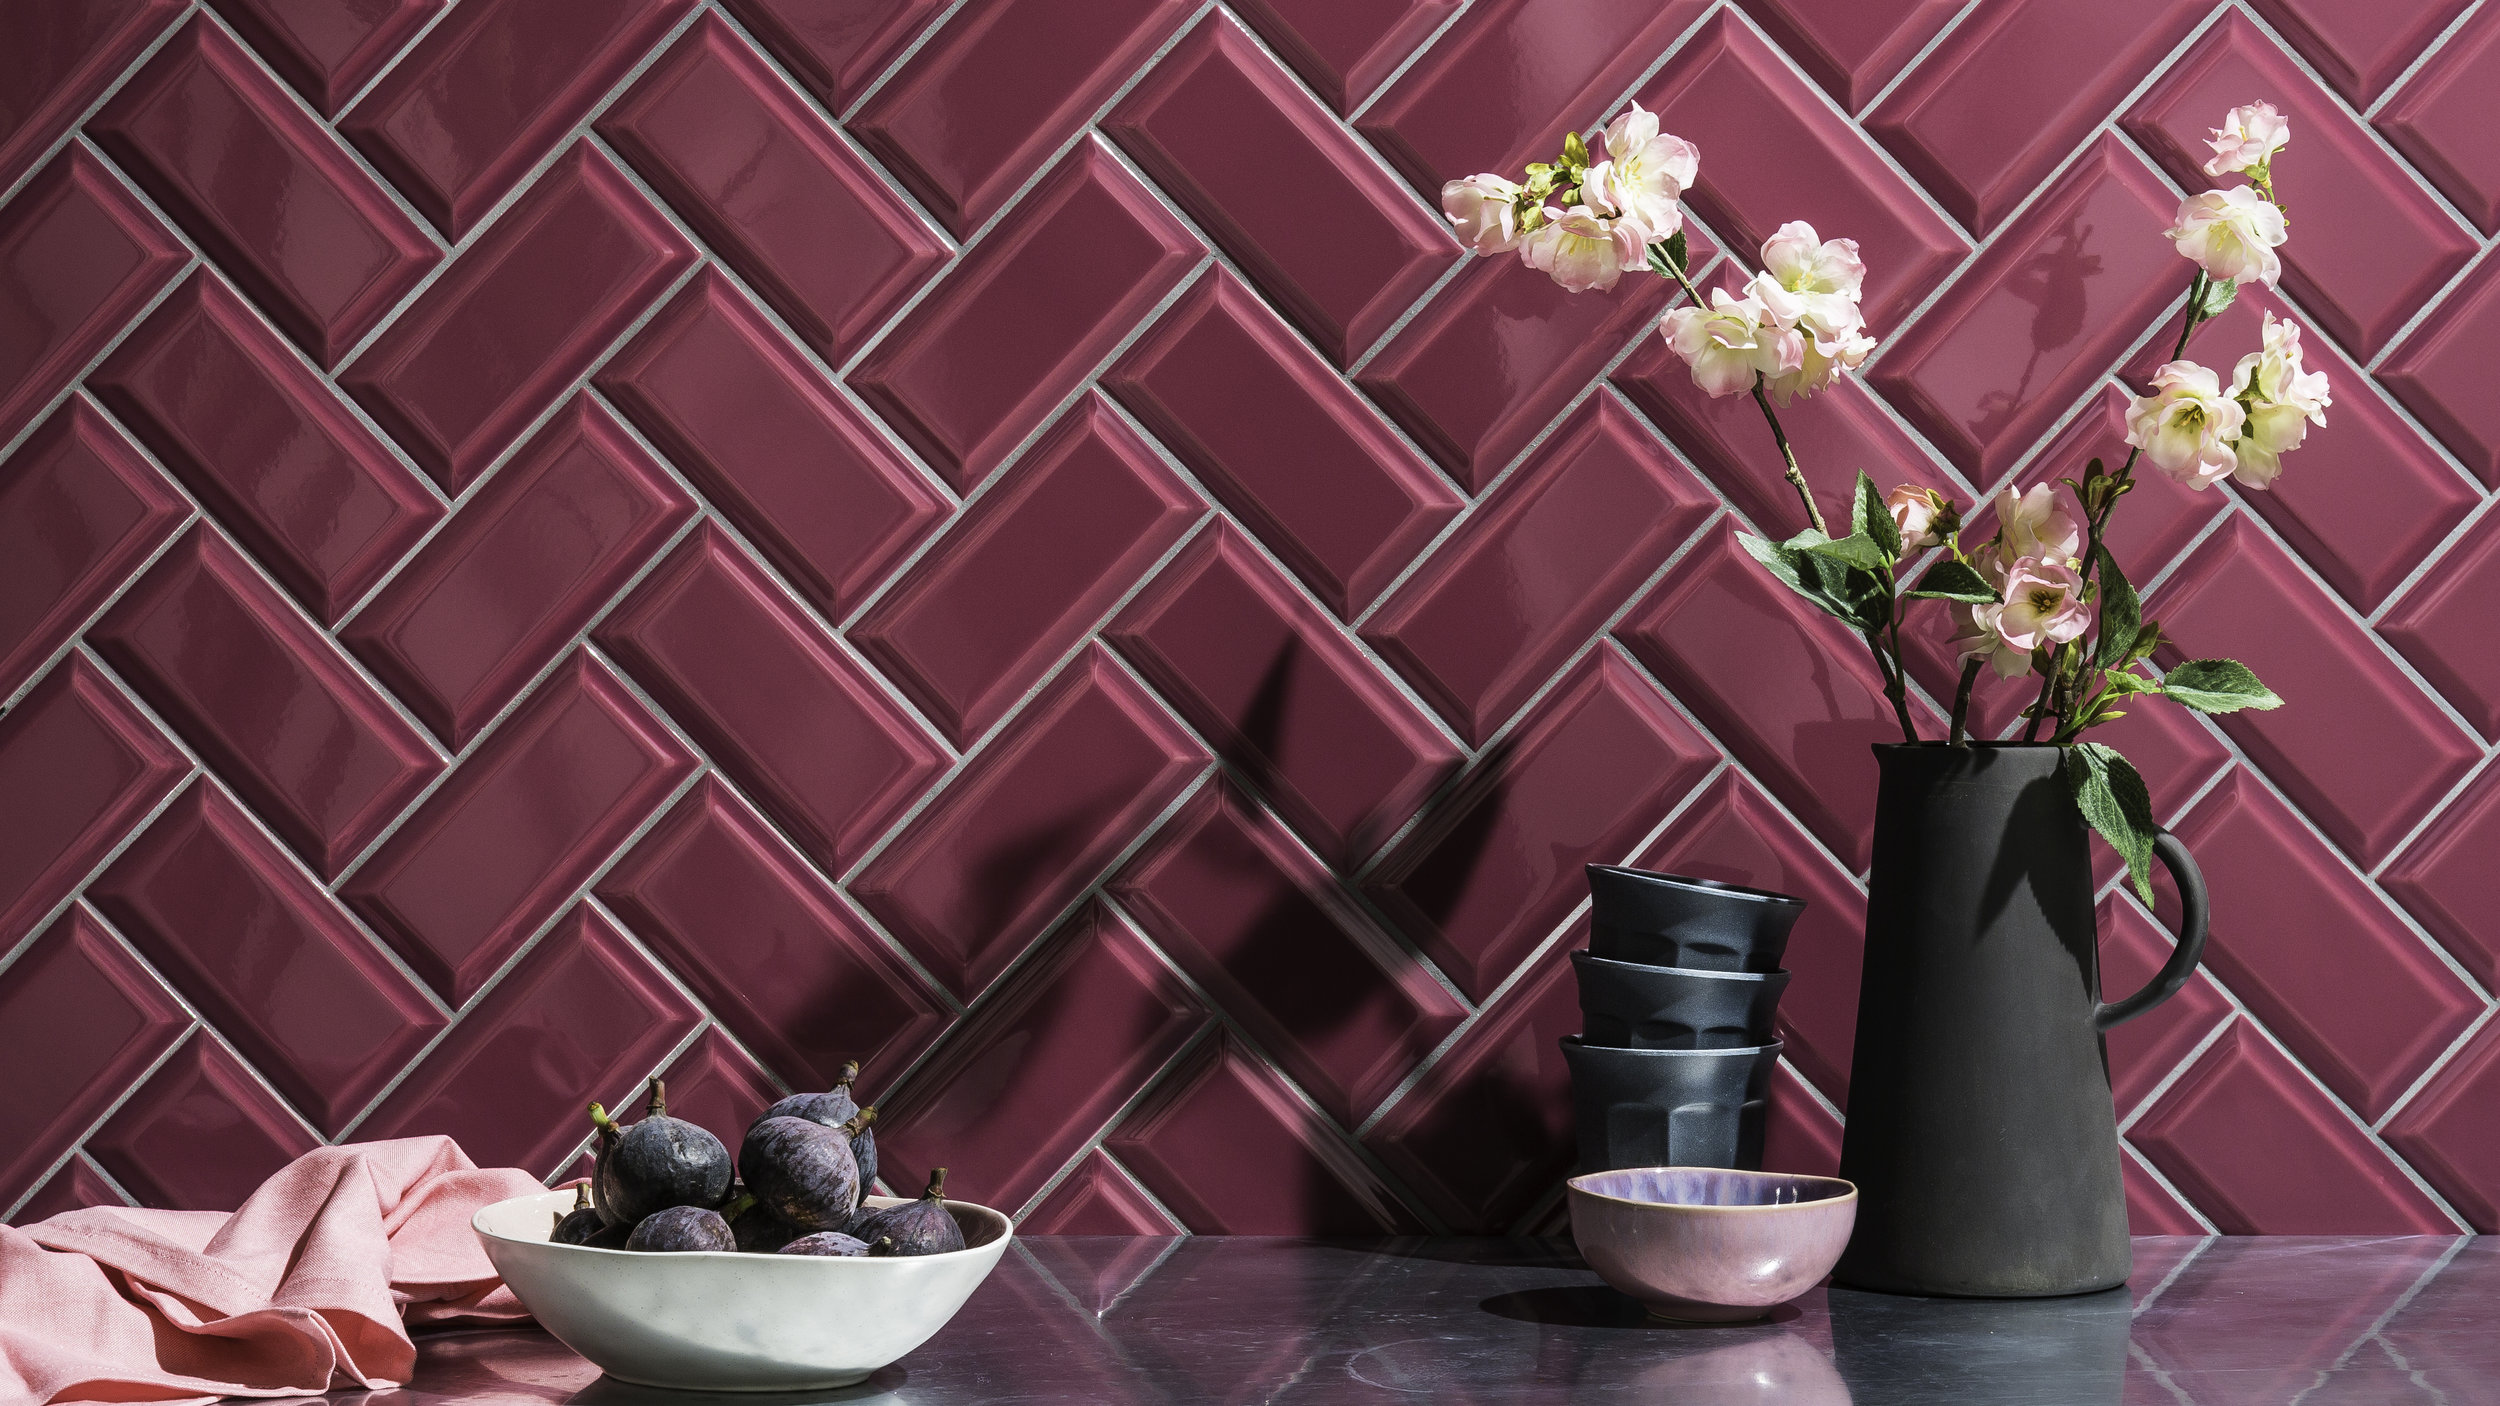 Bevel tiles in Raspberry from Johnson Tiles' Minton Hollins Collection